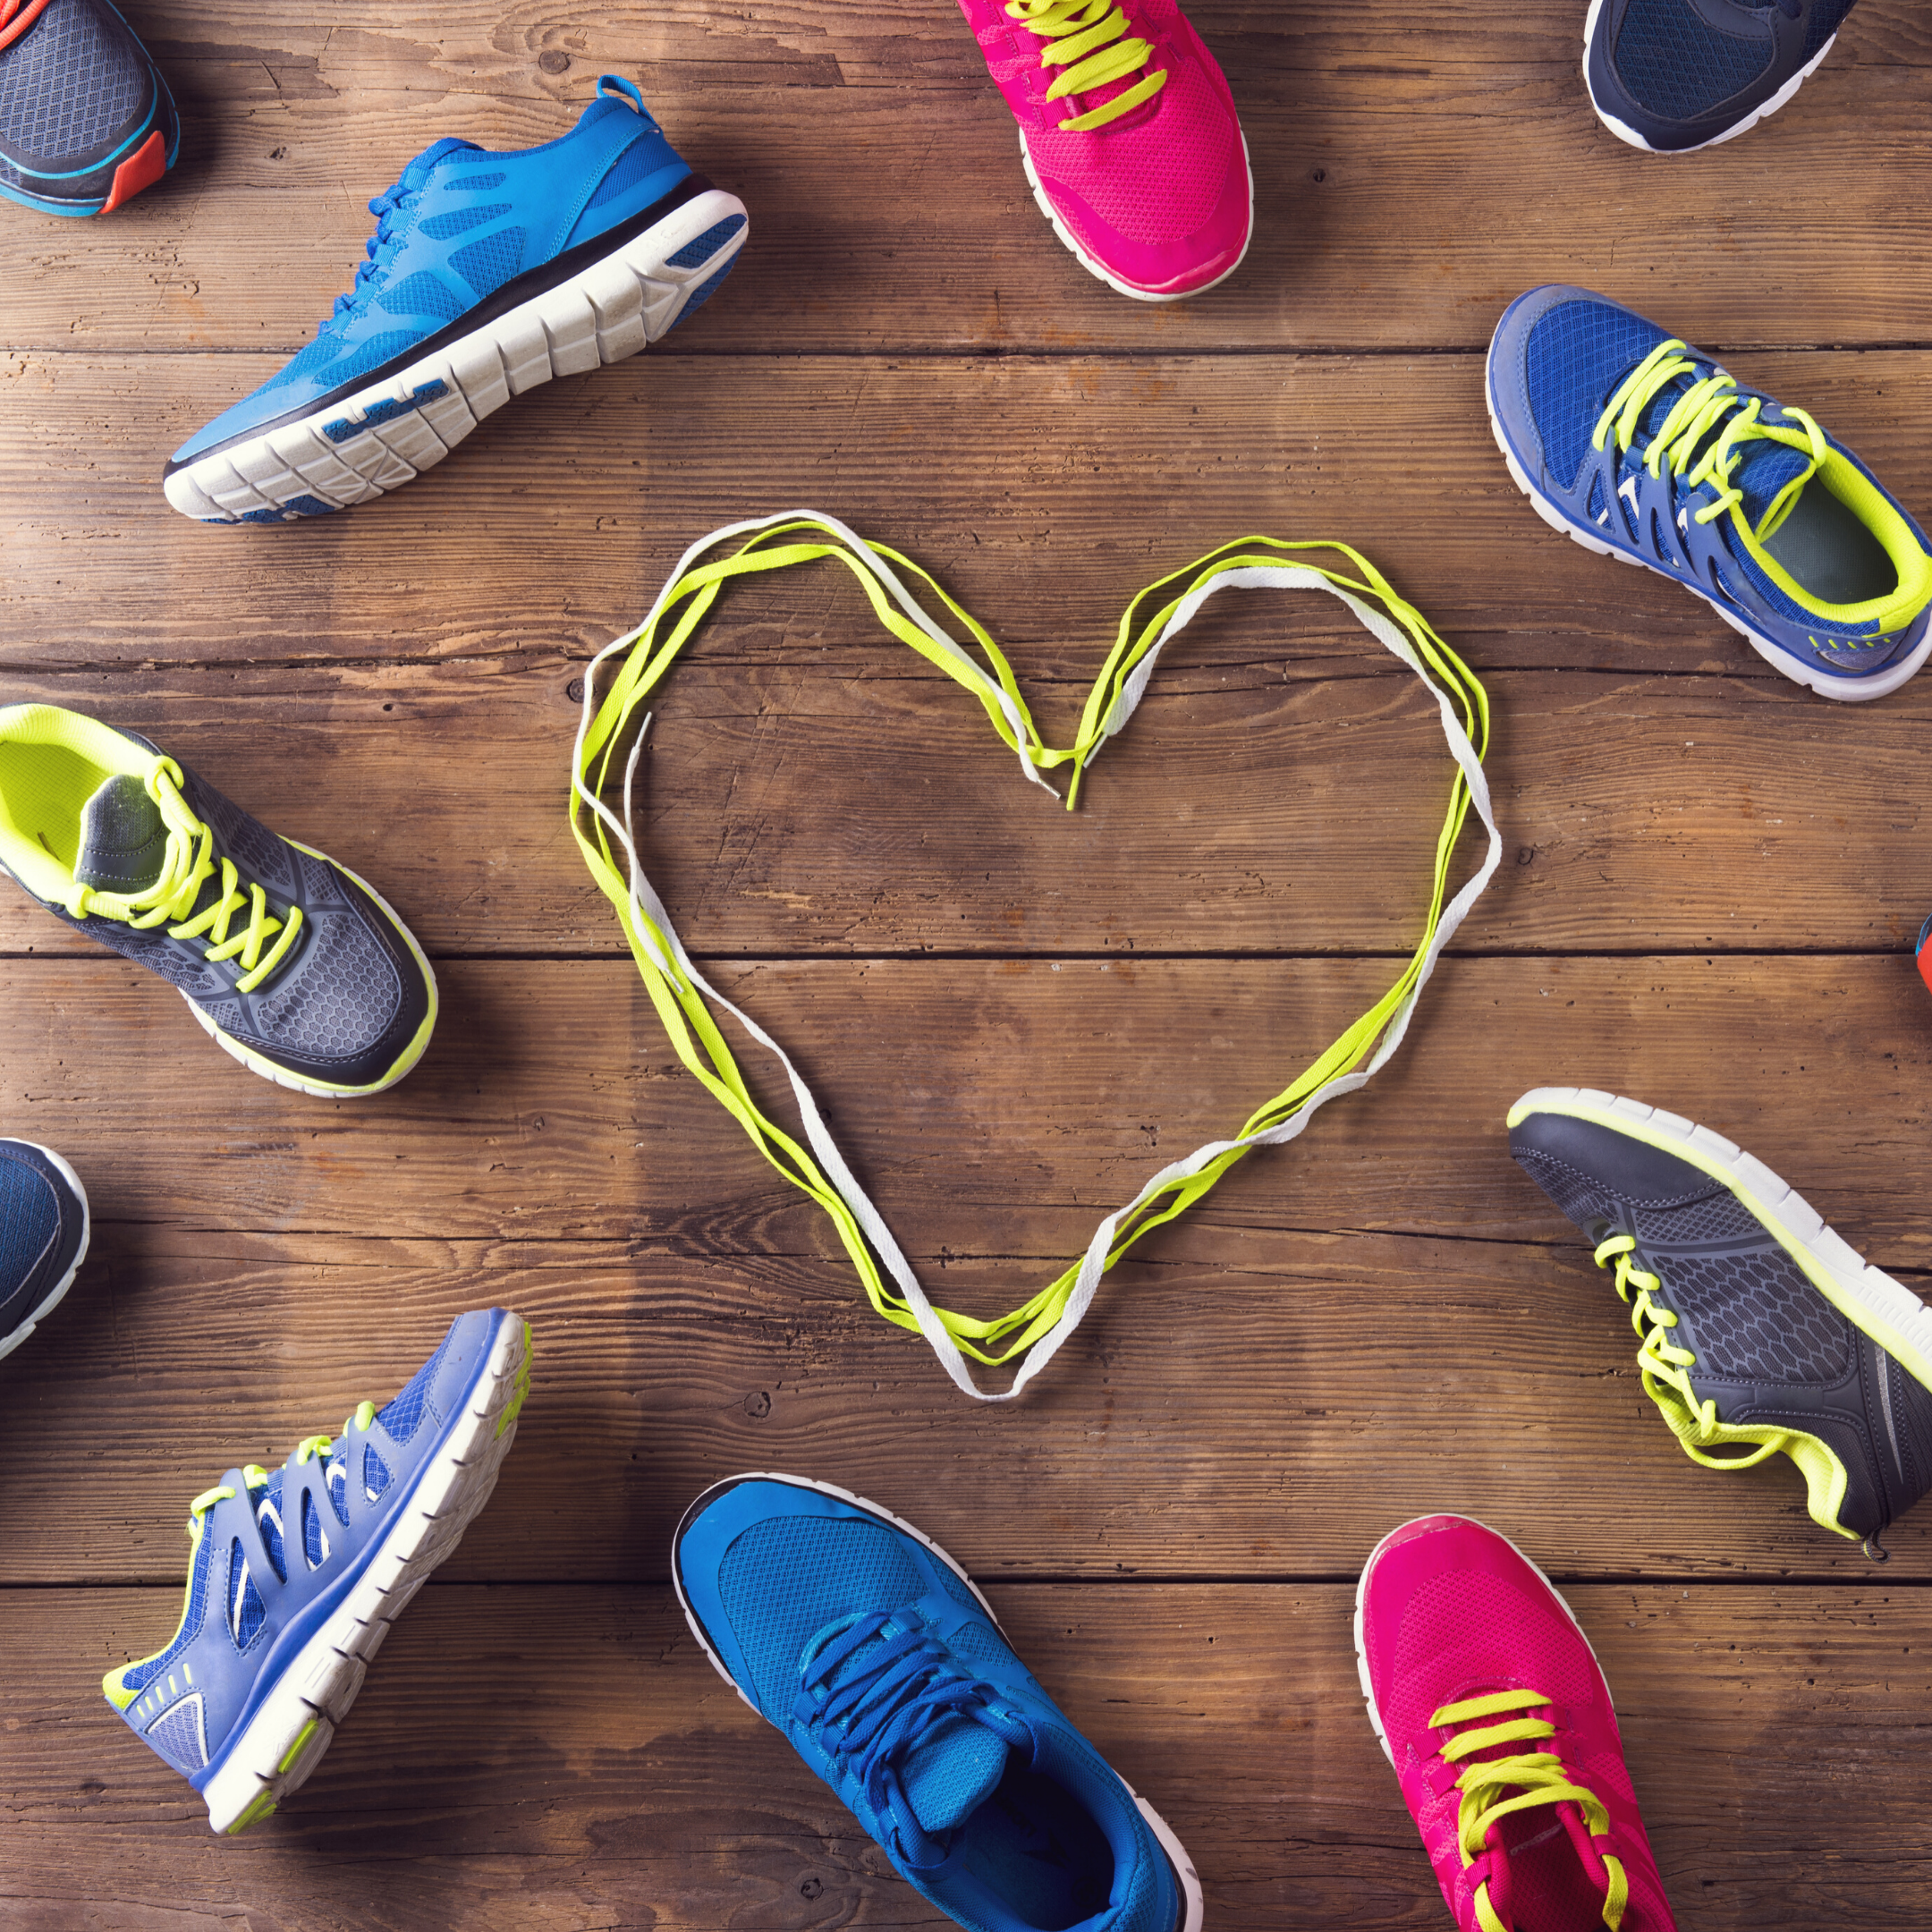 Sneakers on floor with heart in the center made of laces depicting Sports Nutrition